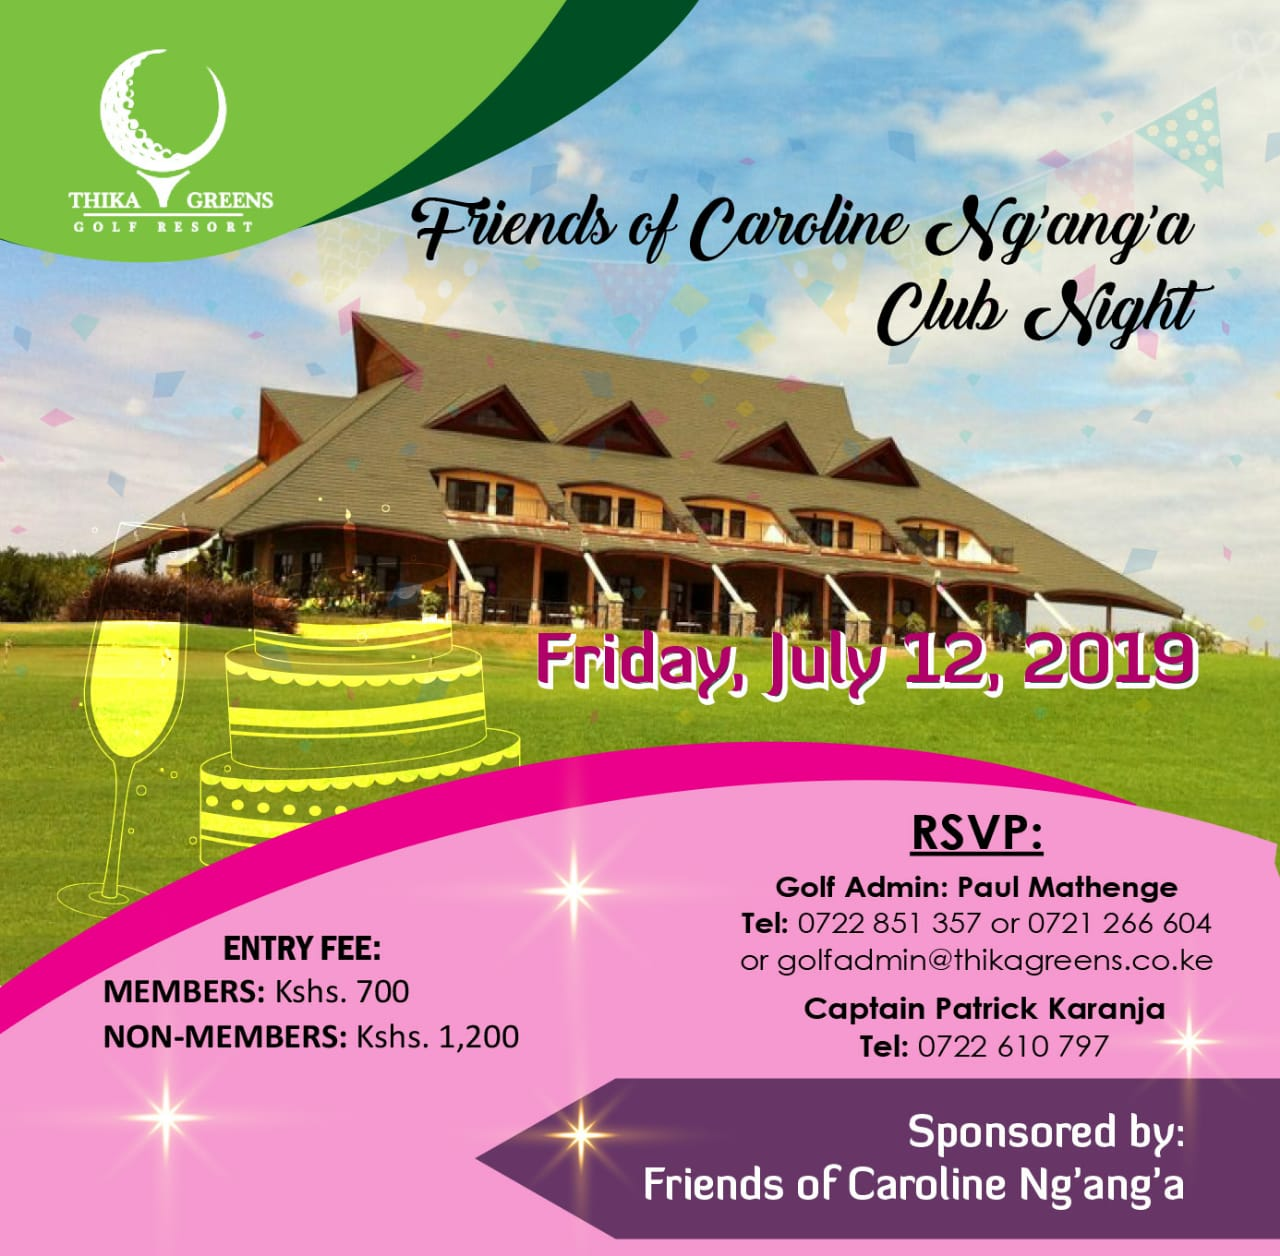 Friends of Caroline Ng'ang'a Club Night